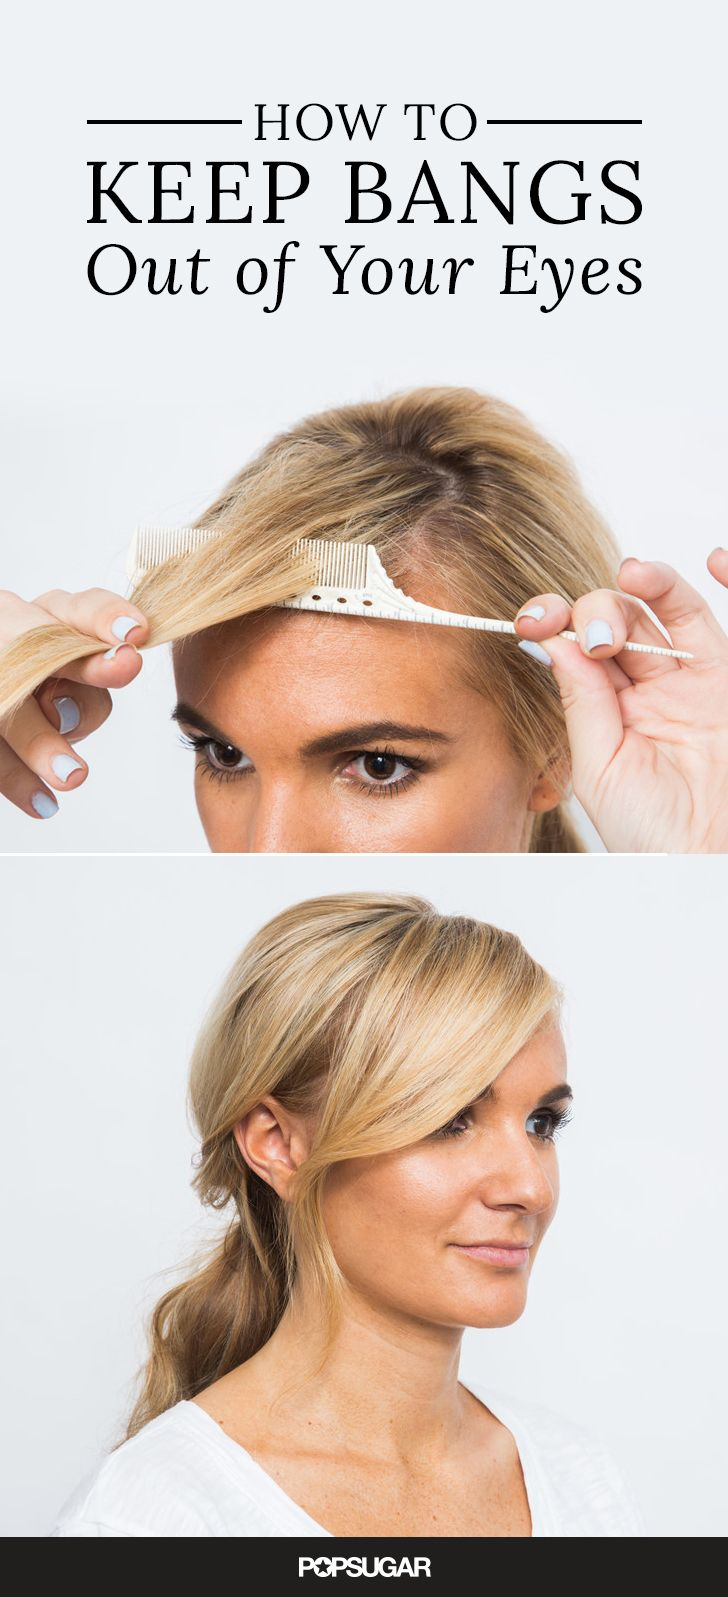 Summer brings out the worst in everyone's hair! But if these hair tricks can hold up at swimsuit shoots on the beach, then they'll do the job for you, too! You'll be amazed at the time you'll save on styling with the two-minute updo and five-minute blowout secrets!